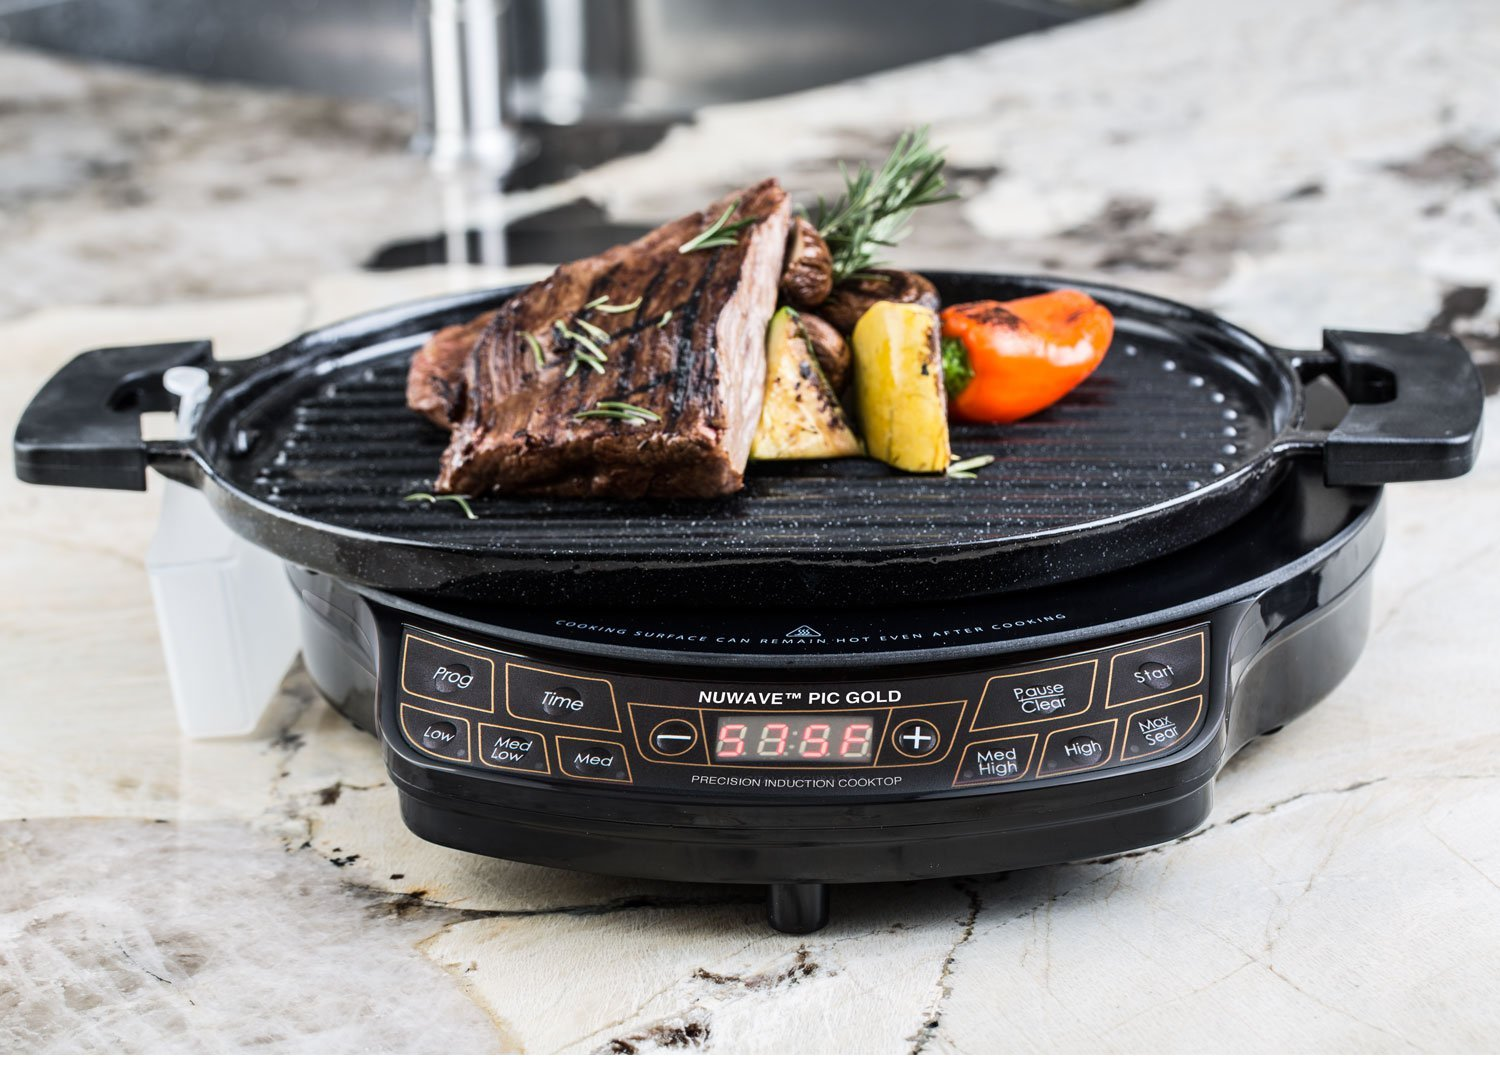 nuwave precision induction cooktop 2 pic2 with grill u2013 review